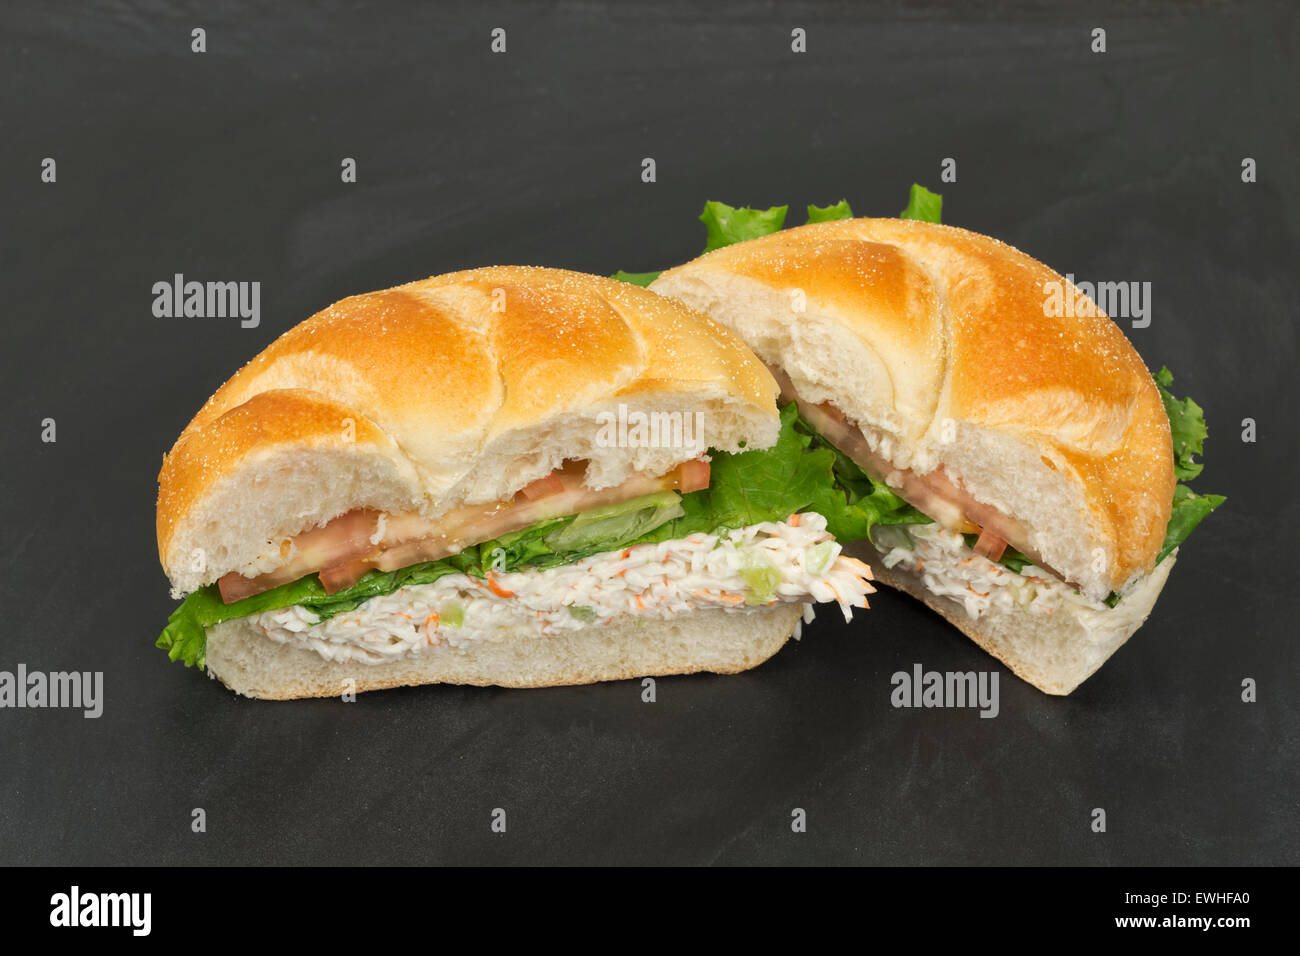 Bound Seafood Salad Sandwich With Mayo On A Kaiser Roll Stock Photo, Royalty Free Image ...